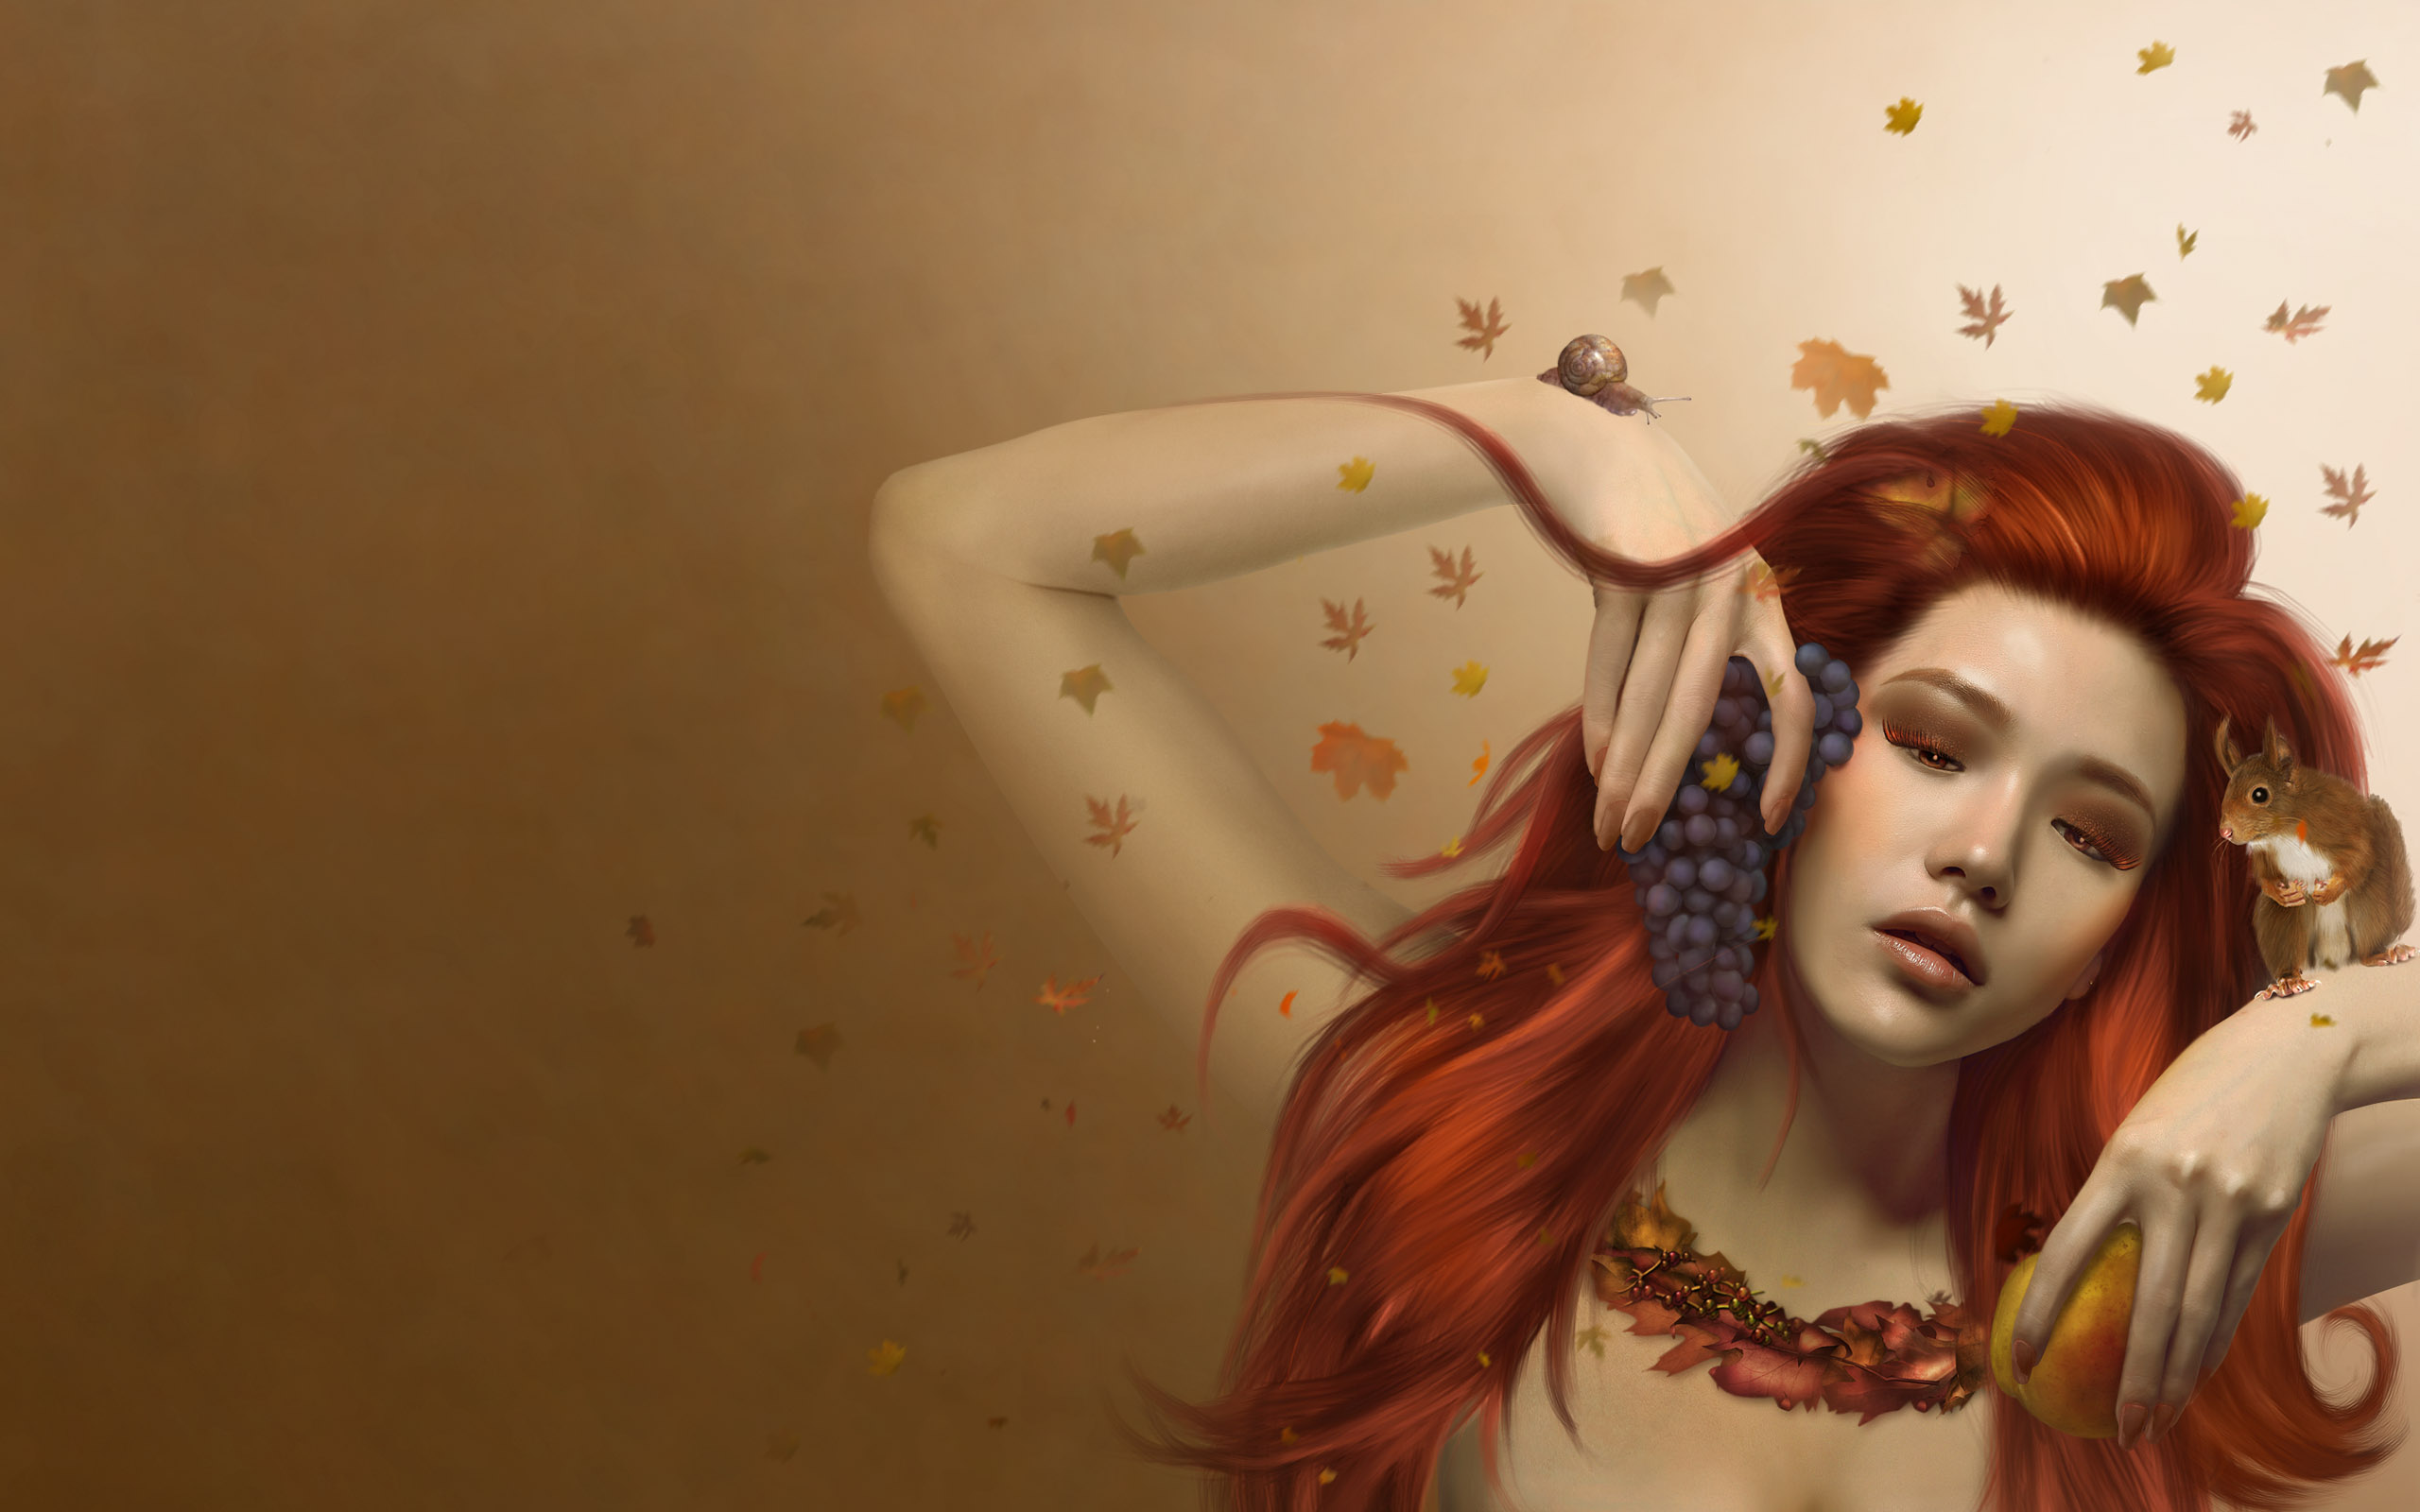 20+ Amazing & Beautiful Digital Art Desktop Wallpapers In HD